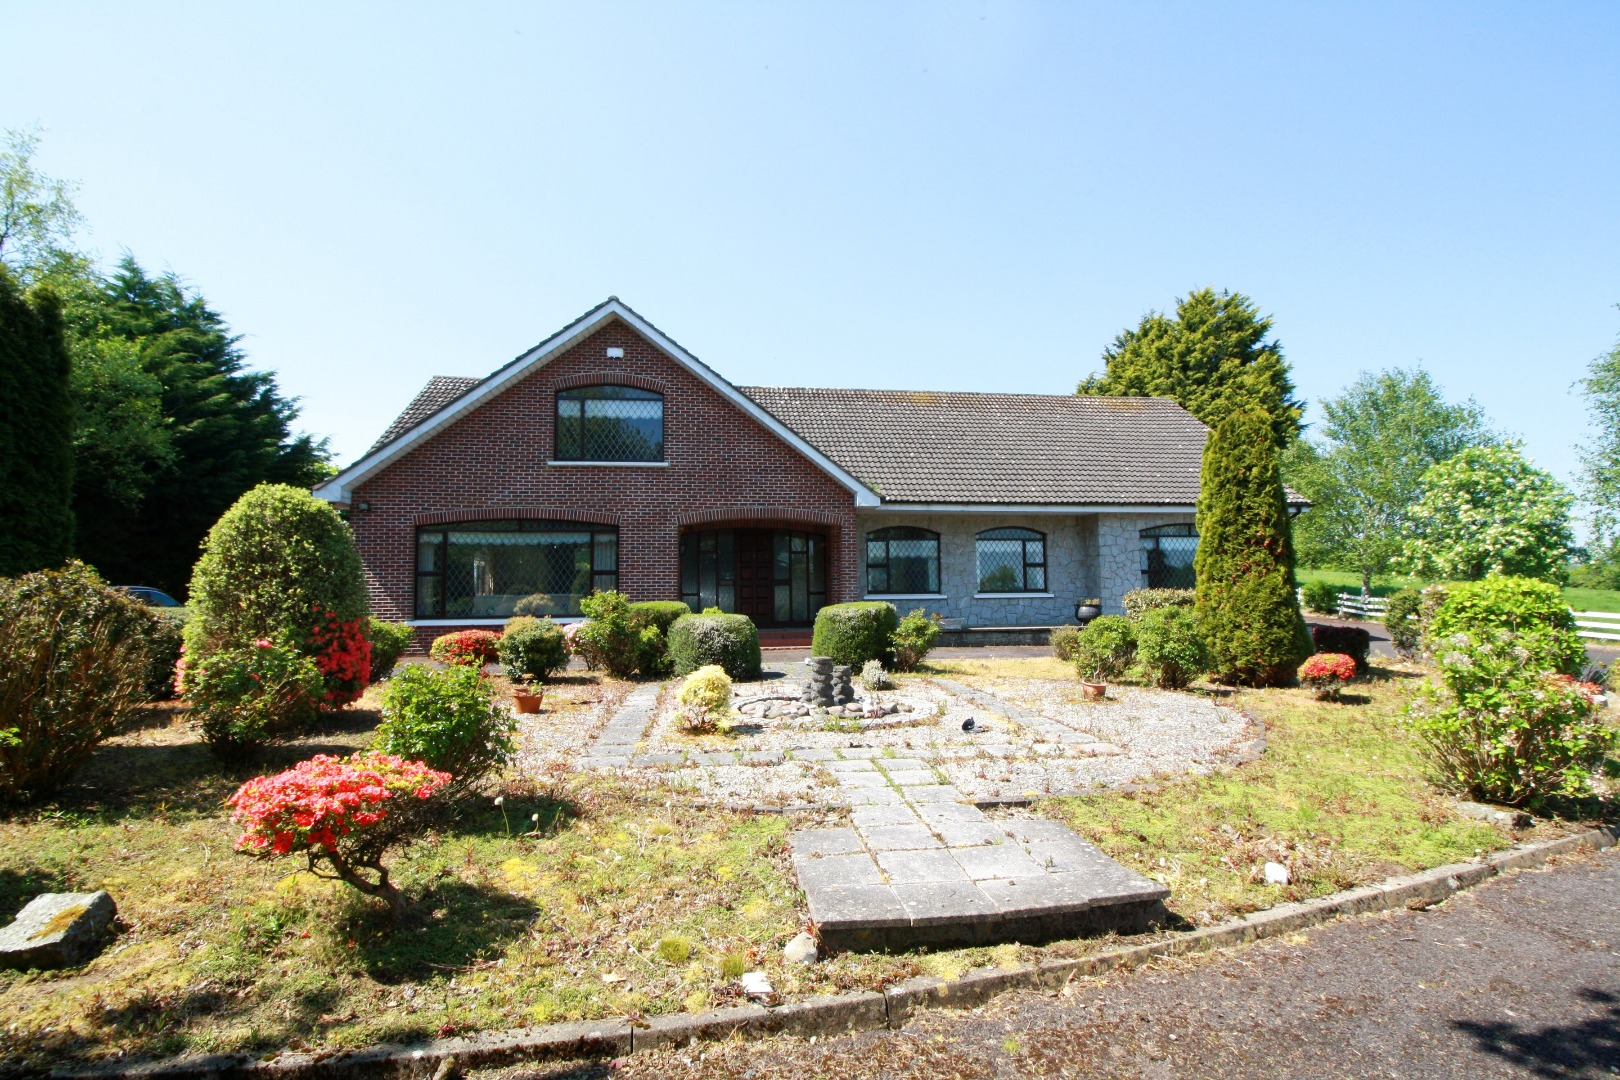 4 bed House for sale on Marahill, Kingscourt, Co. Cavan - Property Image 1